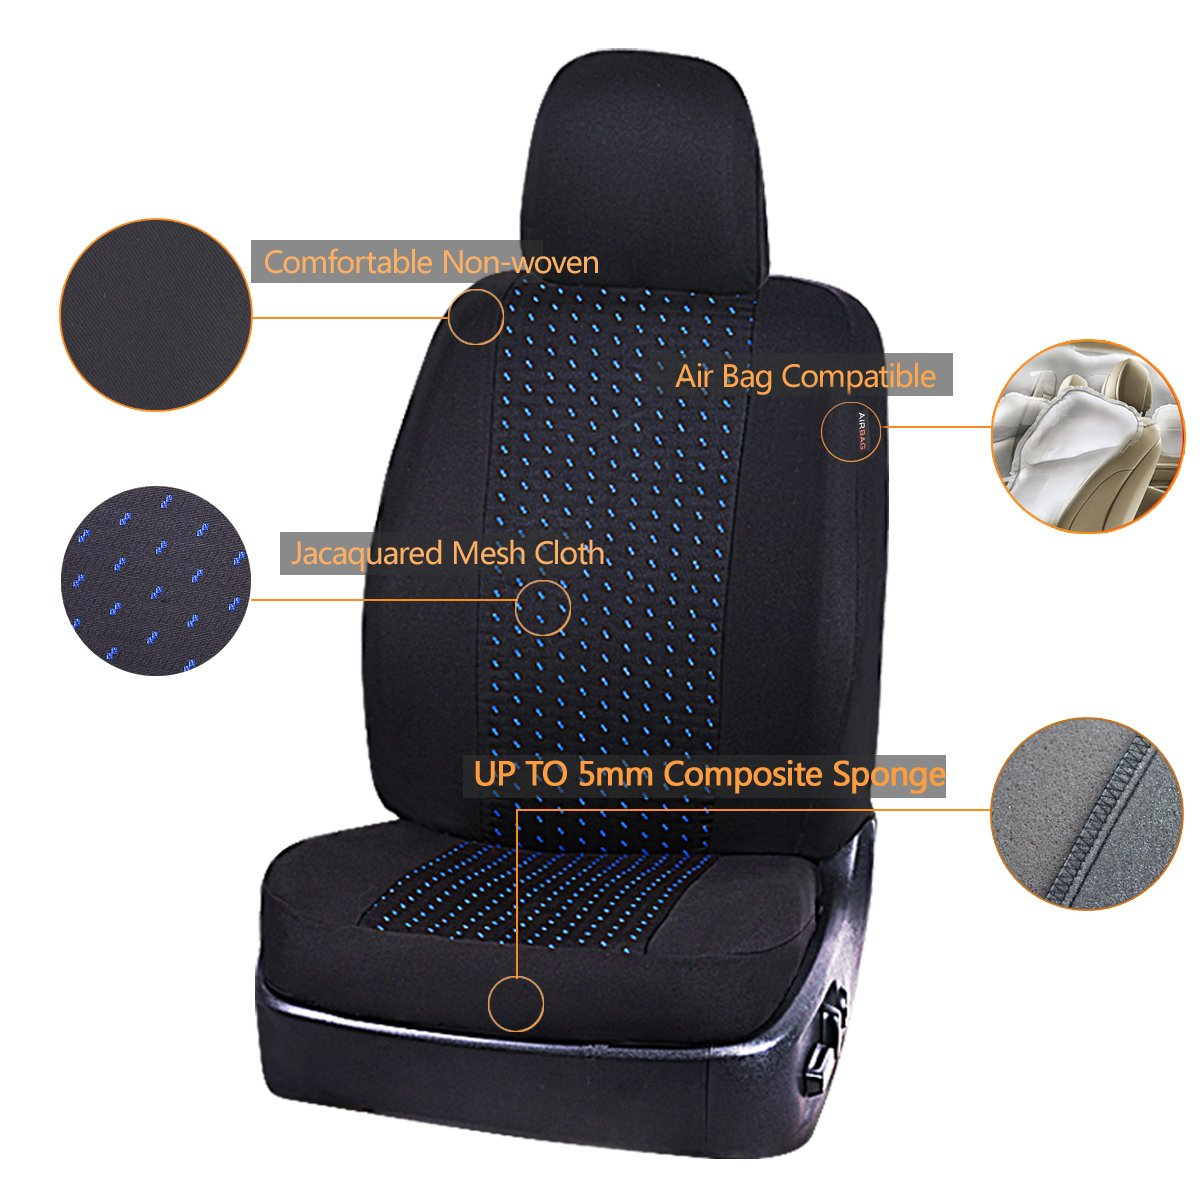 NEW ARRIVAL Black and Gray LJ CAR PASS 11PCS Supreme Universal Jacquard Car Seat Covers Set Universal fit for Vehicles,Cars,SUV,Airbag Compatible